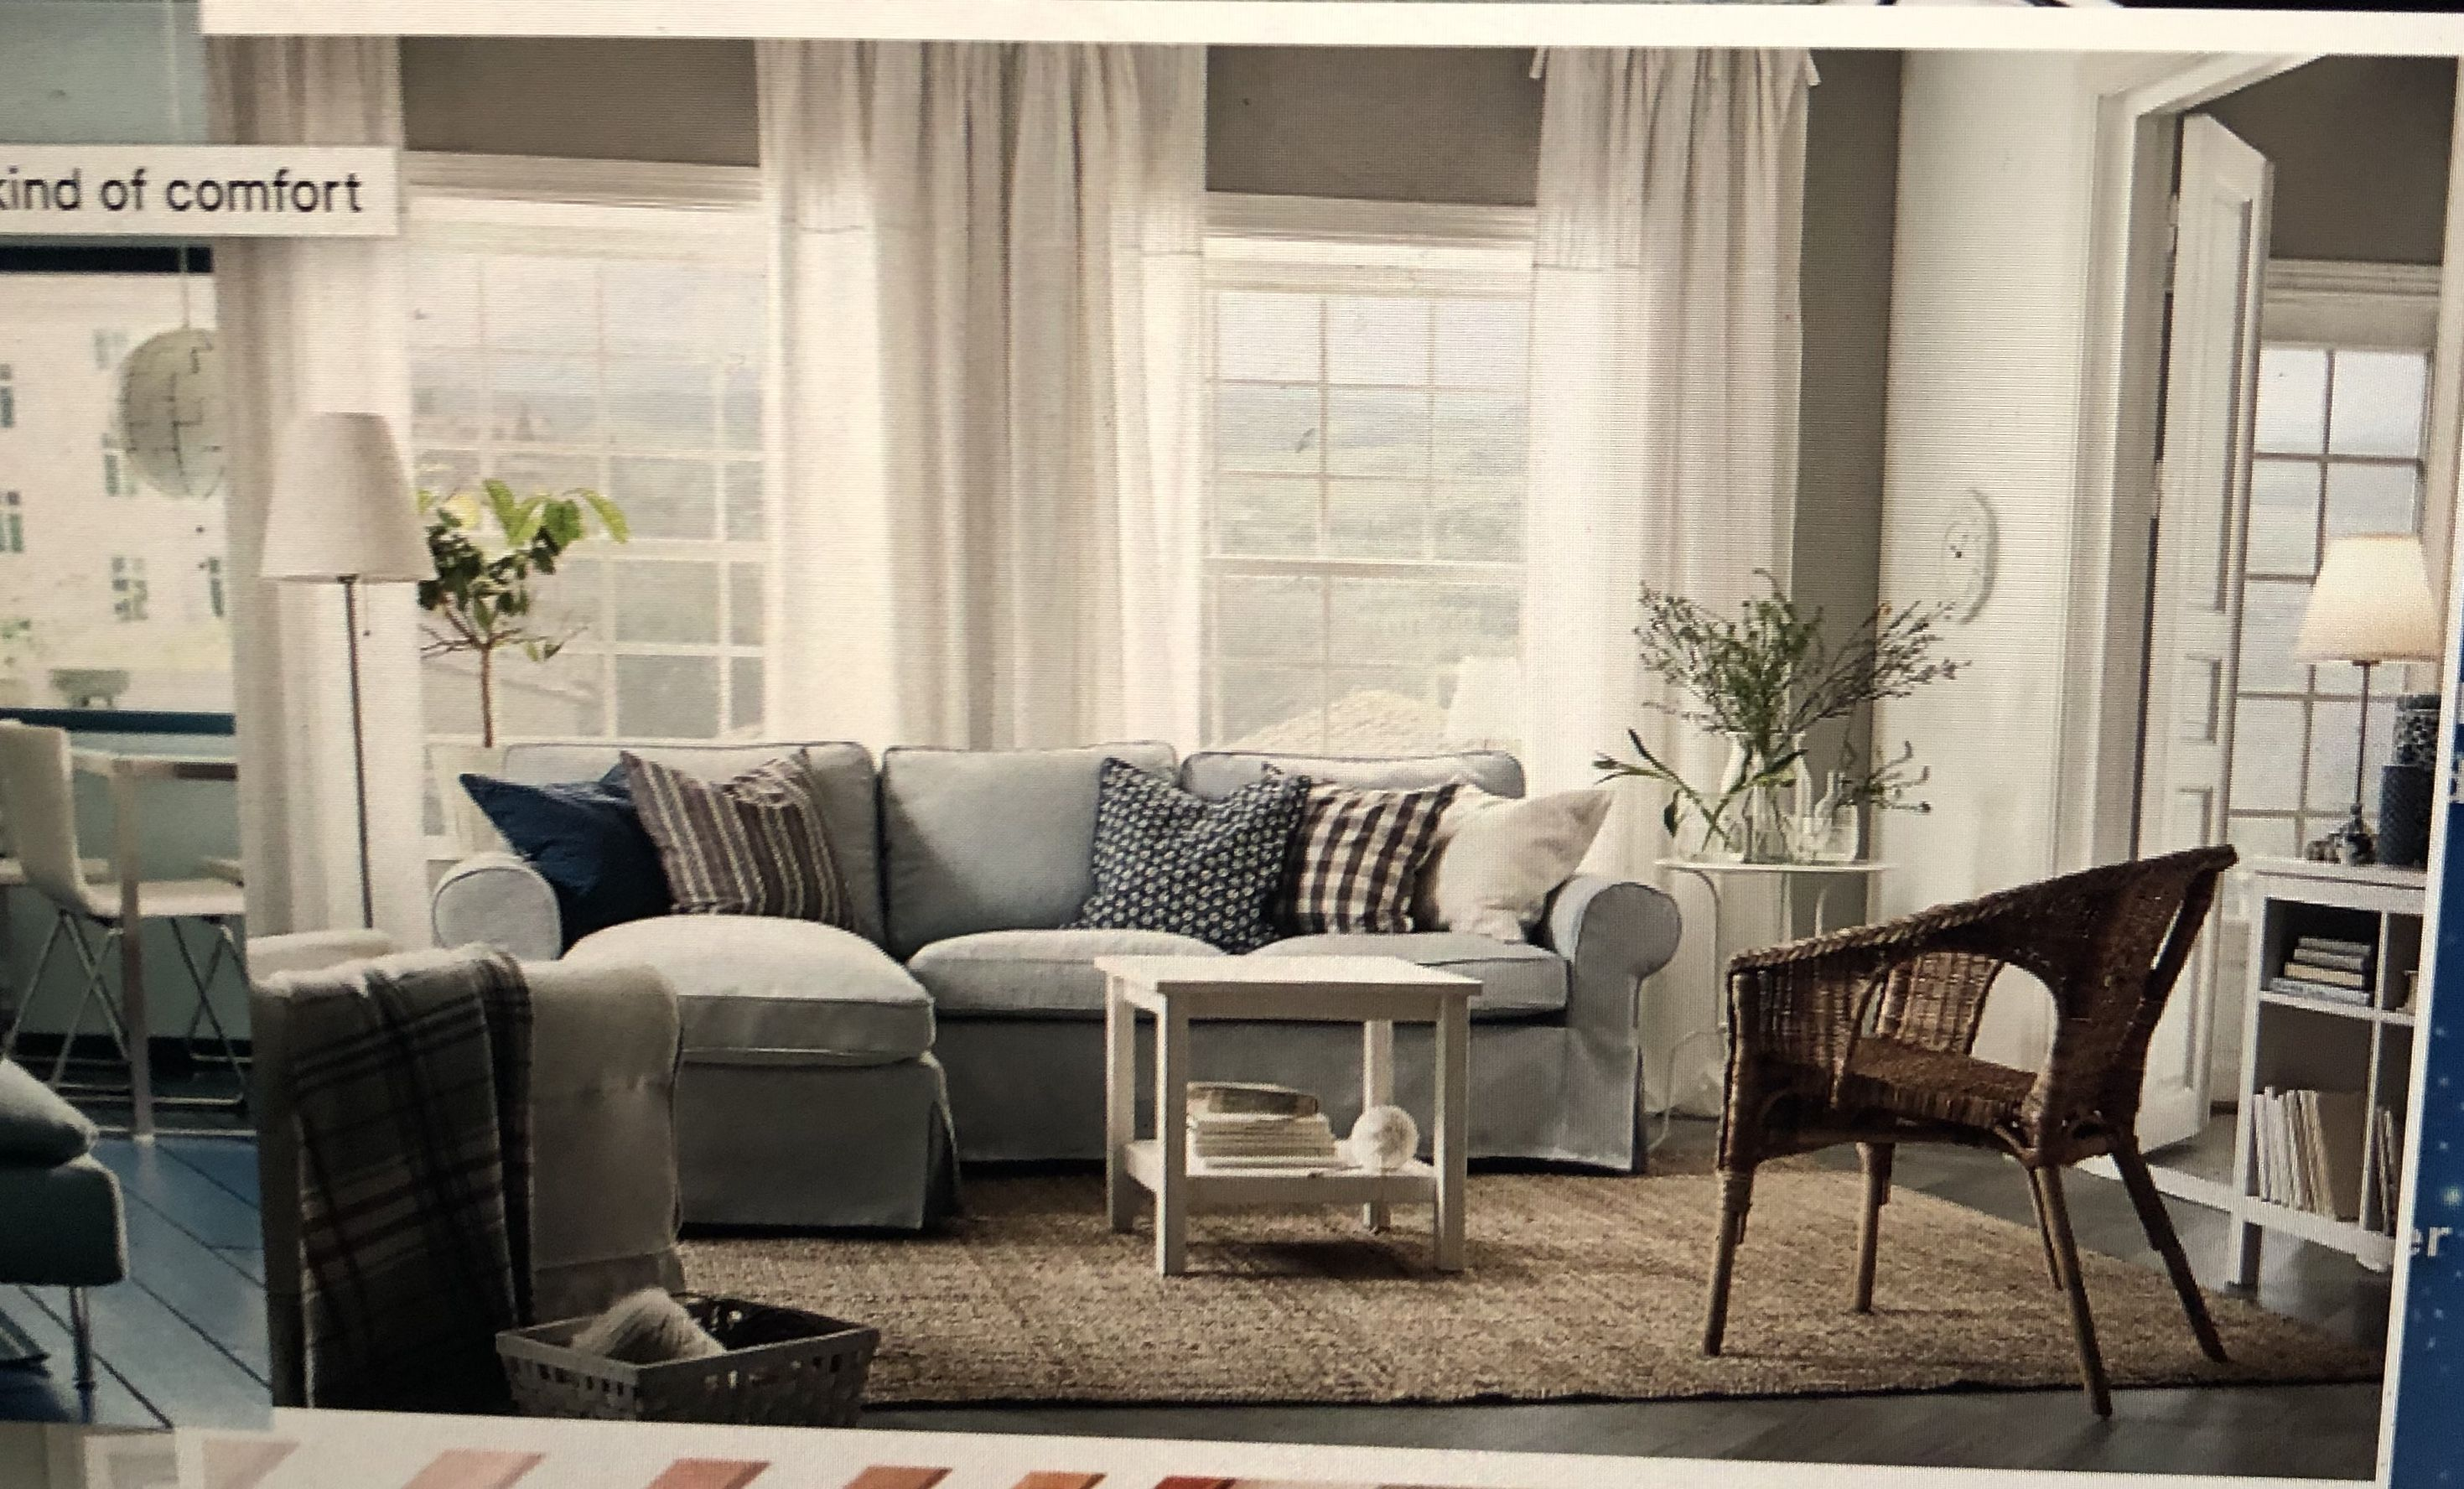 Pin By Dawn Salliotte On Decor With Images Ikea Living Room Ektorp Living Room